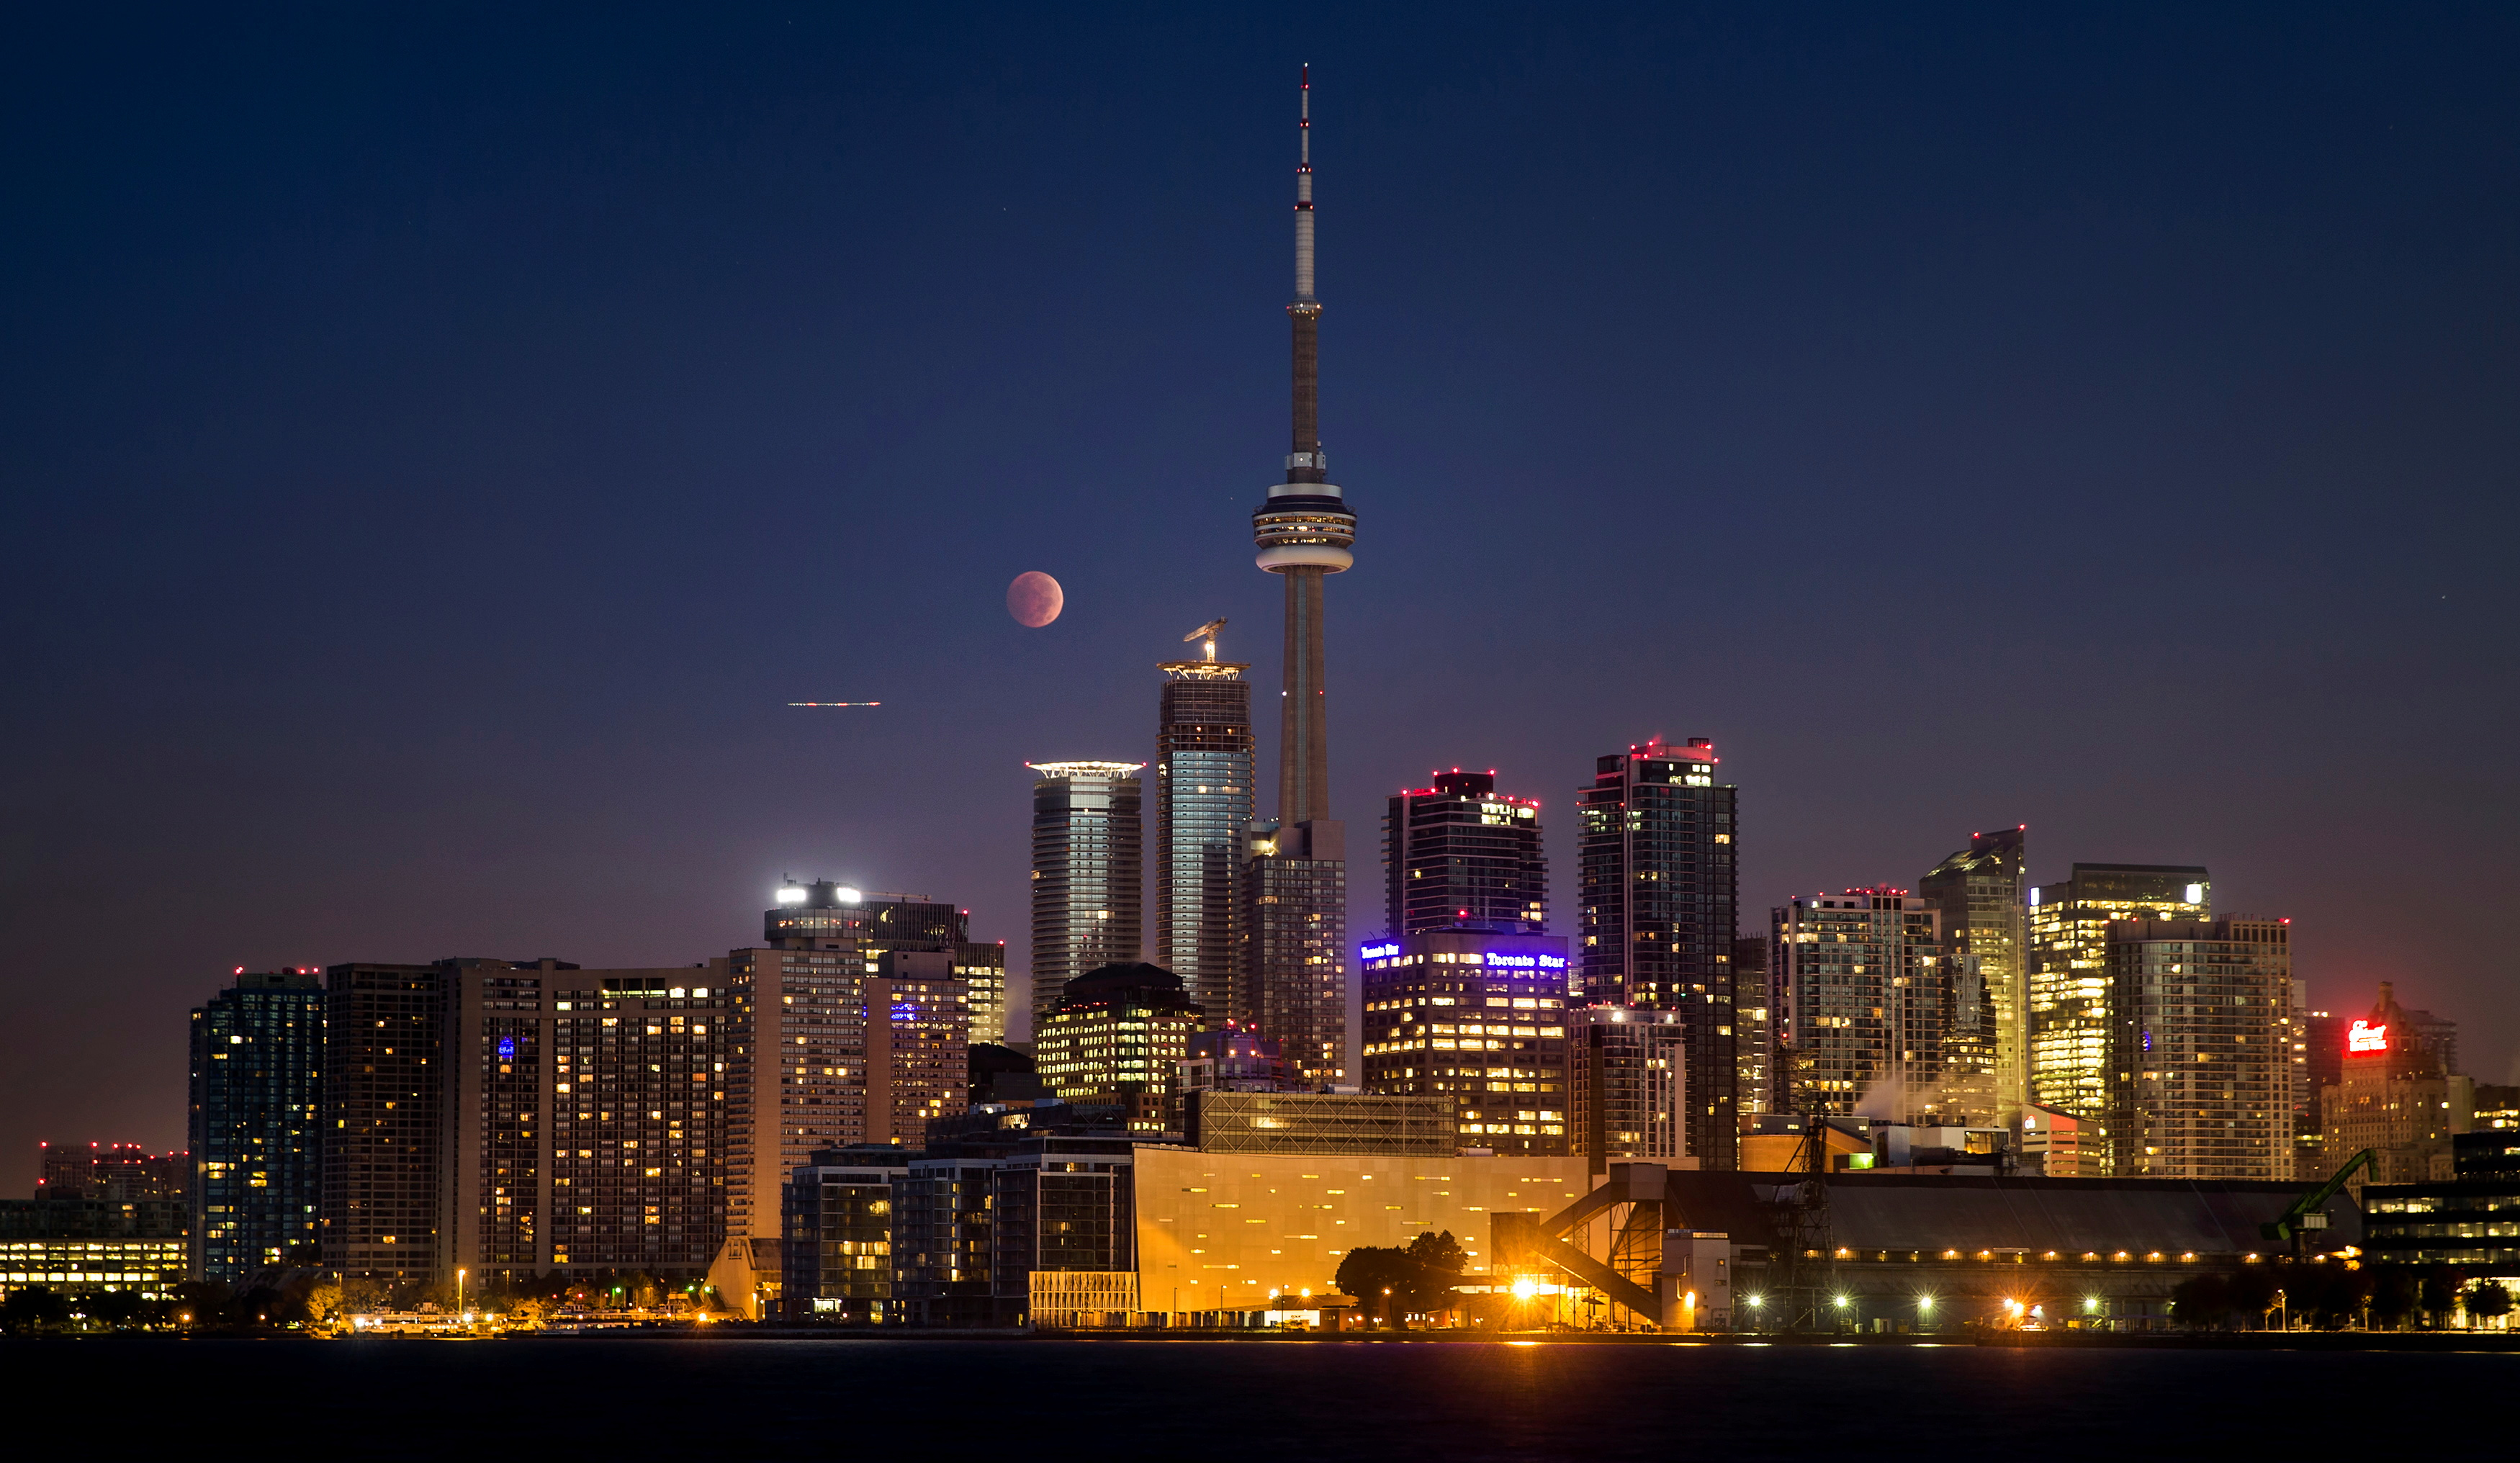 The moon turns orange during a total lunar eclipse behind the CN Tower and the skyline during moonset in Toronto, October 8, 2014. REUTERS/Mark Blinch/File Photo